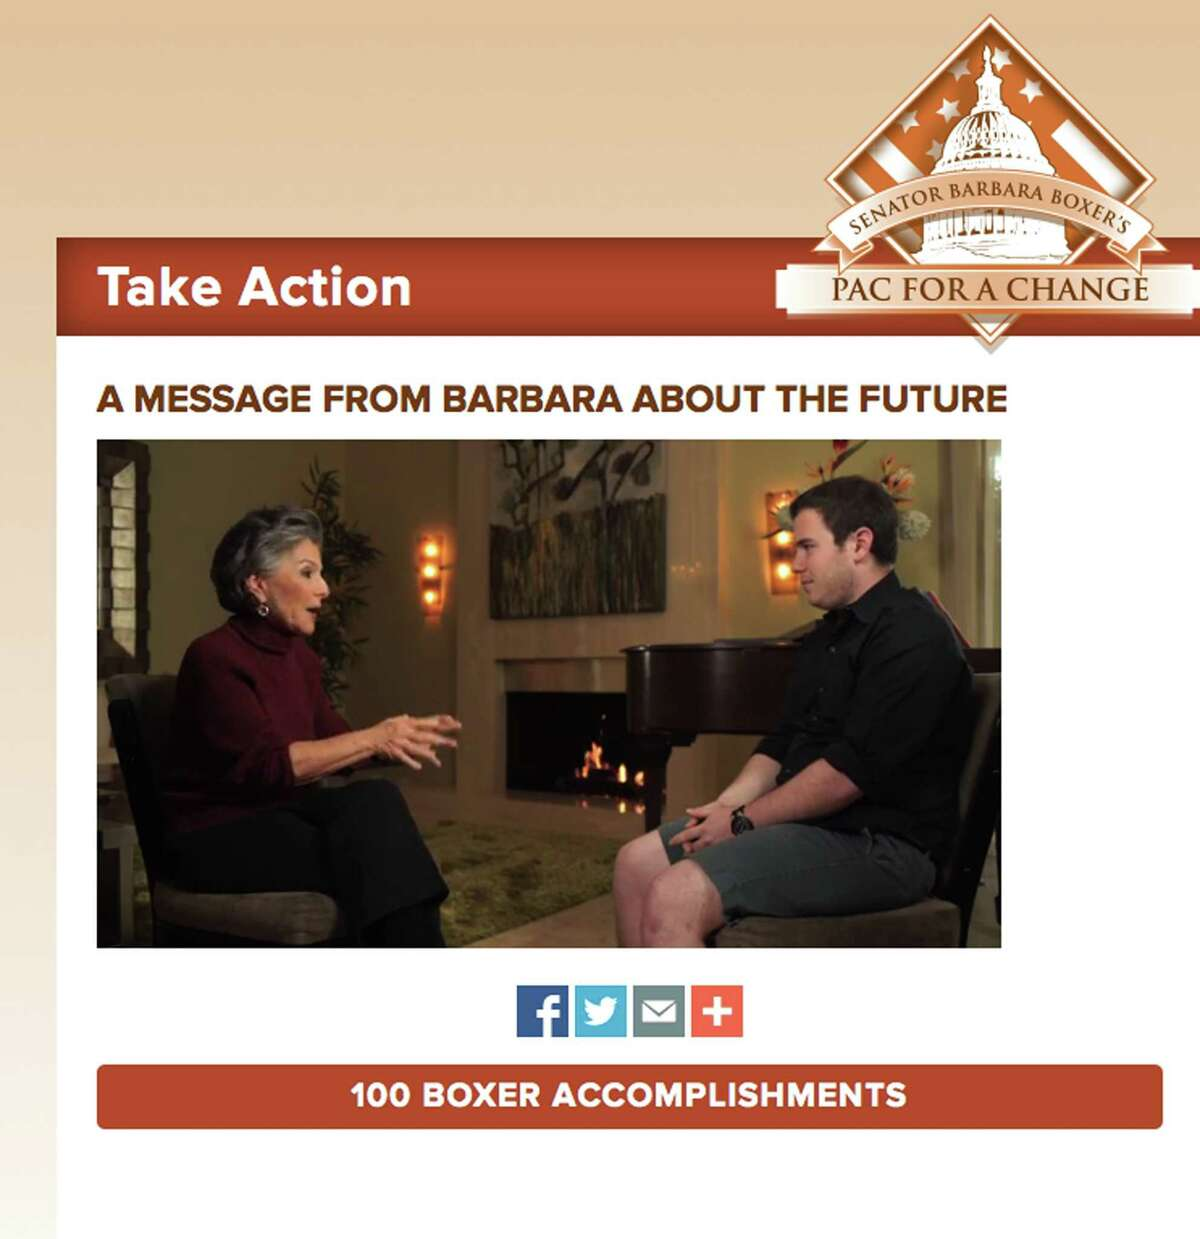 Sen. Barbara Boxer reveals she won't seek re-election in 2016 during an online interview with grandson Zachary Rodham.